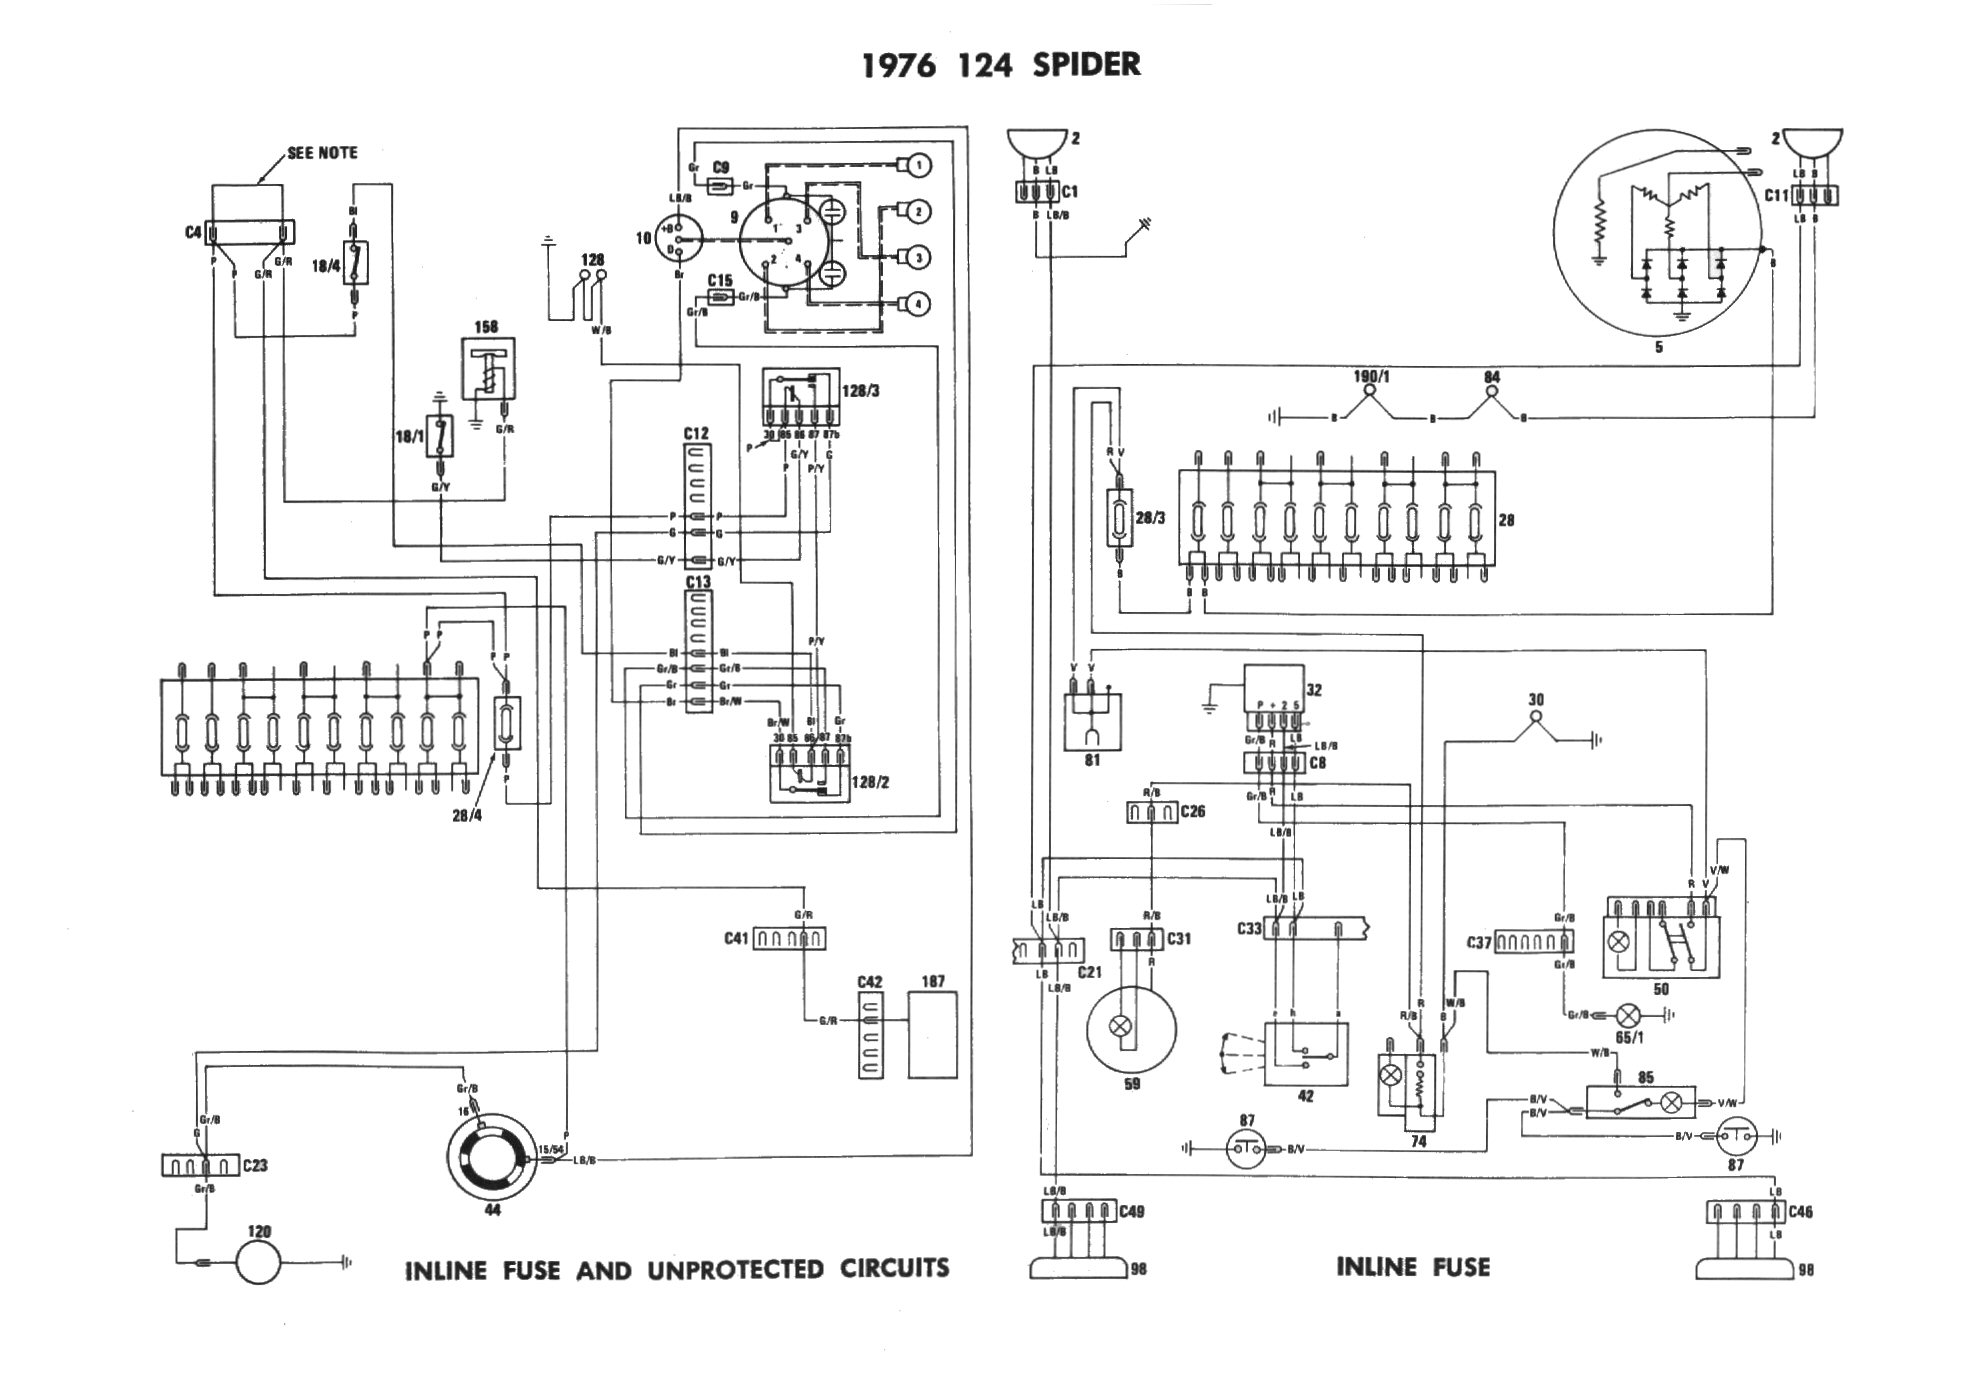 88 Honda Accord Wiring Diagram moreover Help Car Wont Start 2955264 moreover Water Level Control moreover Pontiac Torrent Fuel Pump Location moreover 4dm7k Oldsmobile Delta 88 1996 Olds 88 Interior Heater. on well pump relay switch